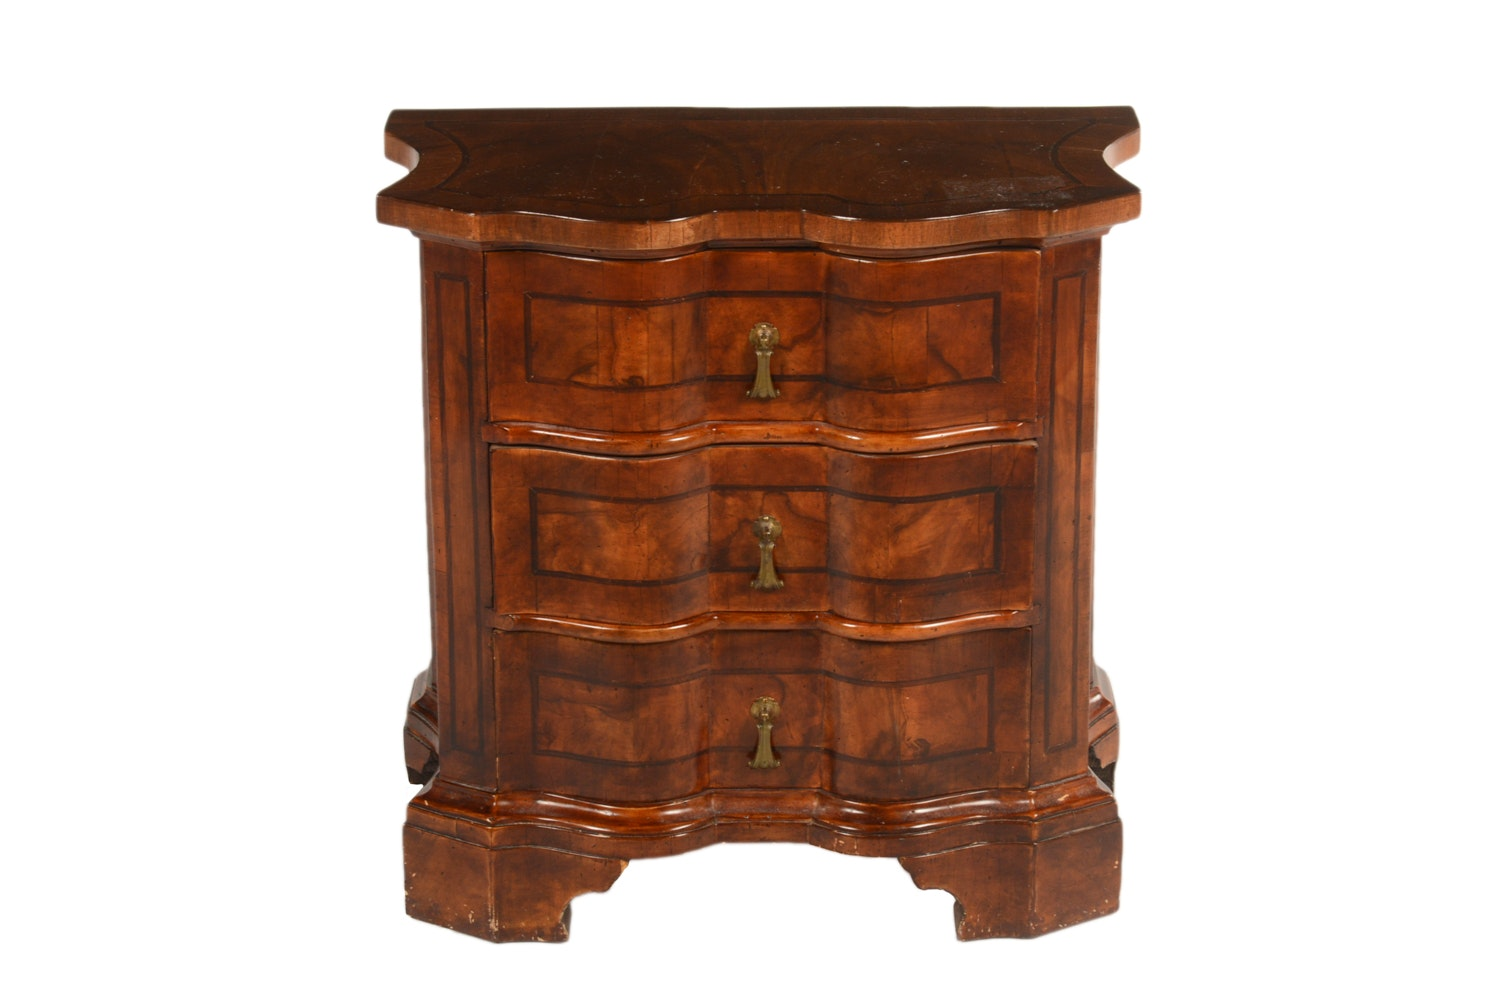 George III Style Mahogany Three-Drawer Chest, 20th Century